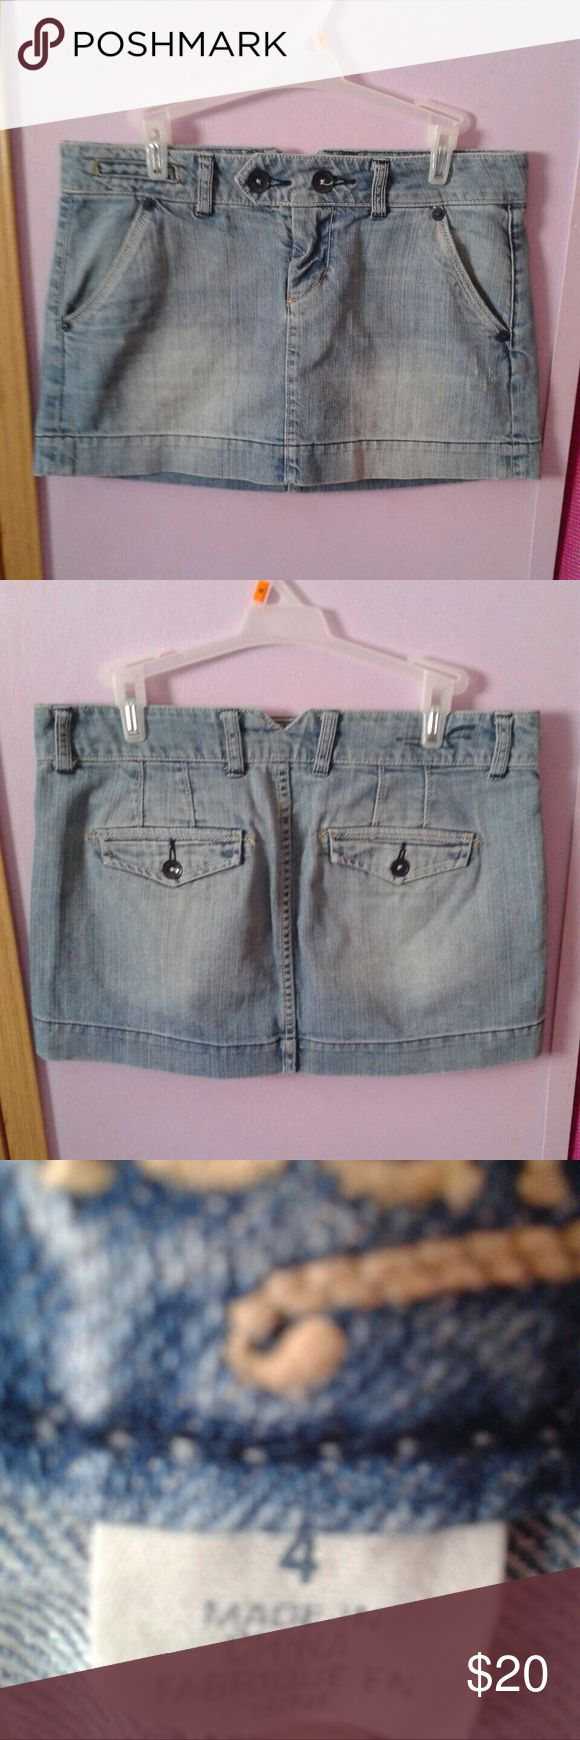 American Eagle Outfitters Denim Mini Skirt Denim mini skirt from American Eagle Outfitters. Size 6. No flaws American Eagle Outfitters Skirts Mini